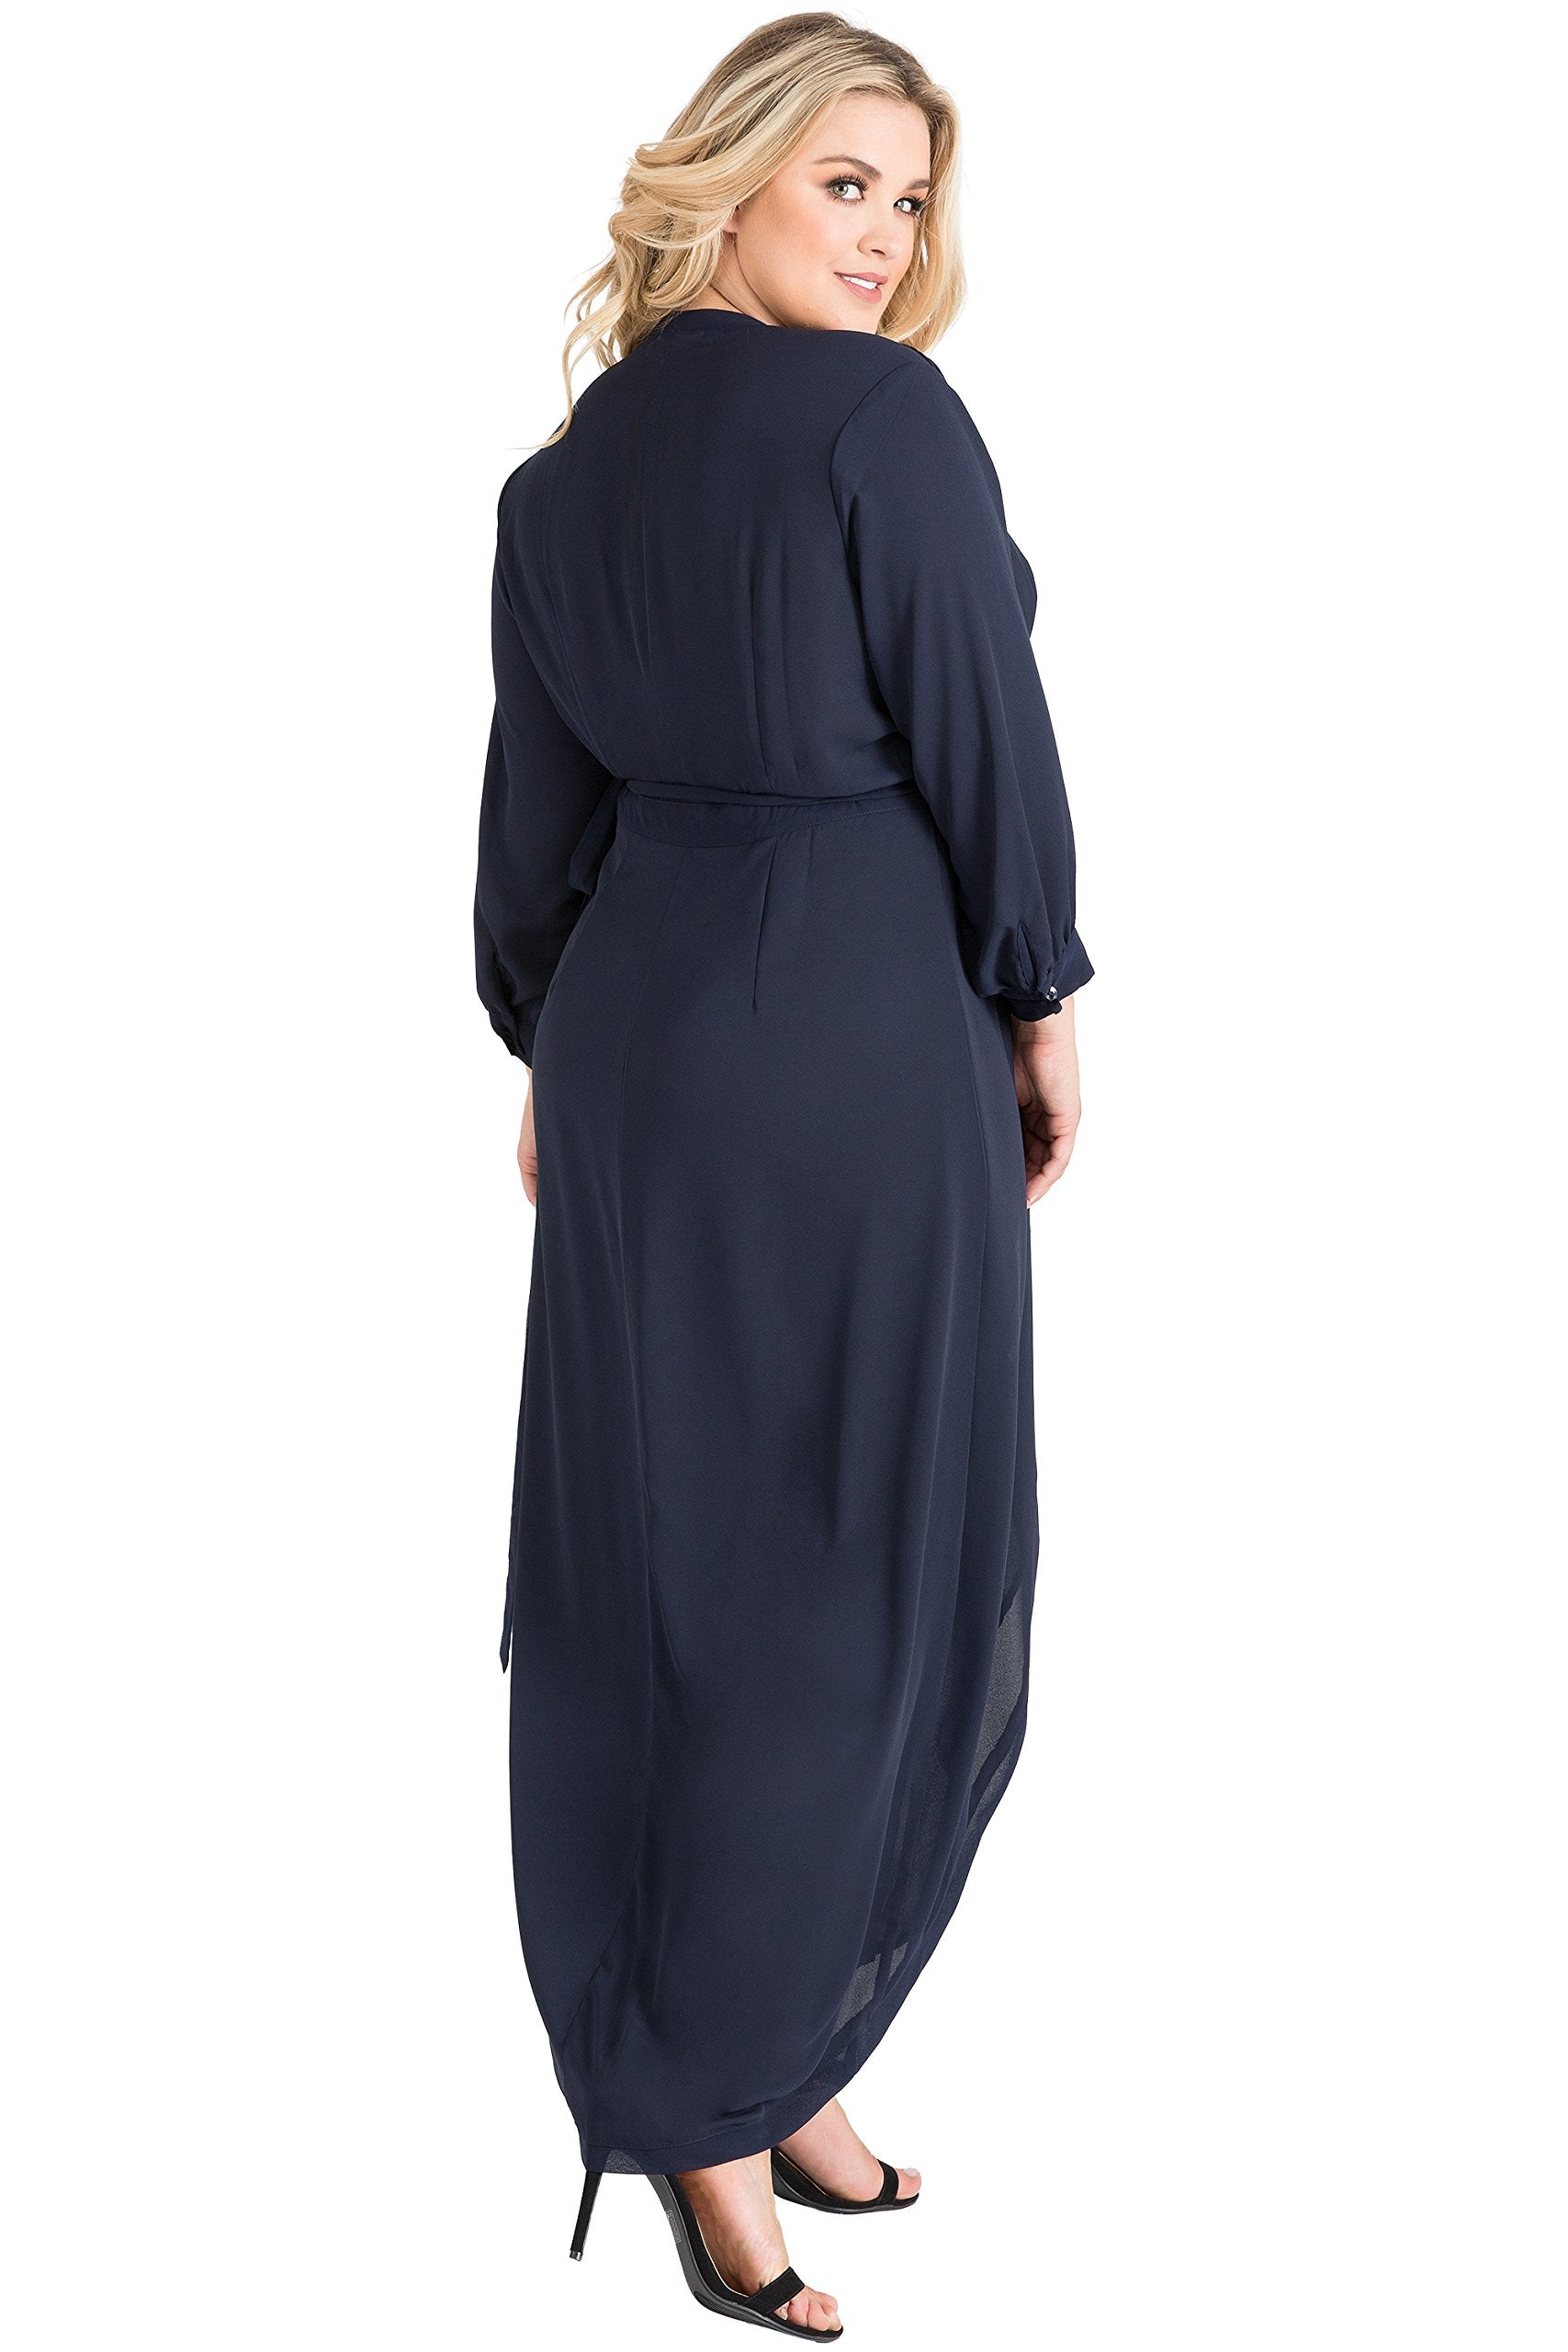 Plus Size Women's Blue Tulip Chiffon Wrap Dress Size